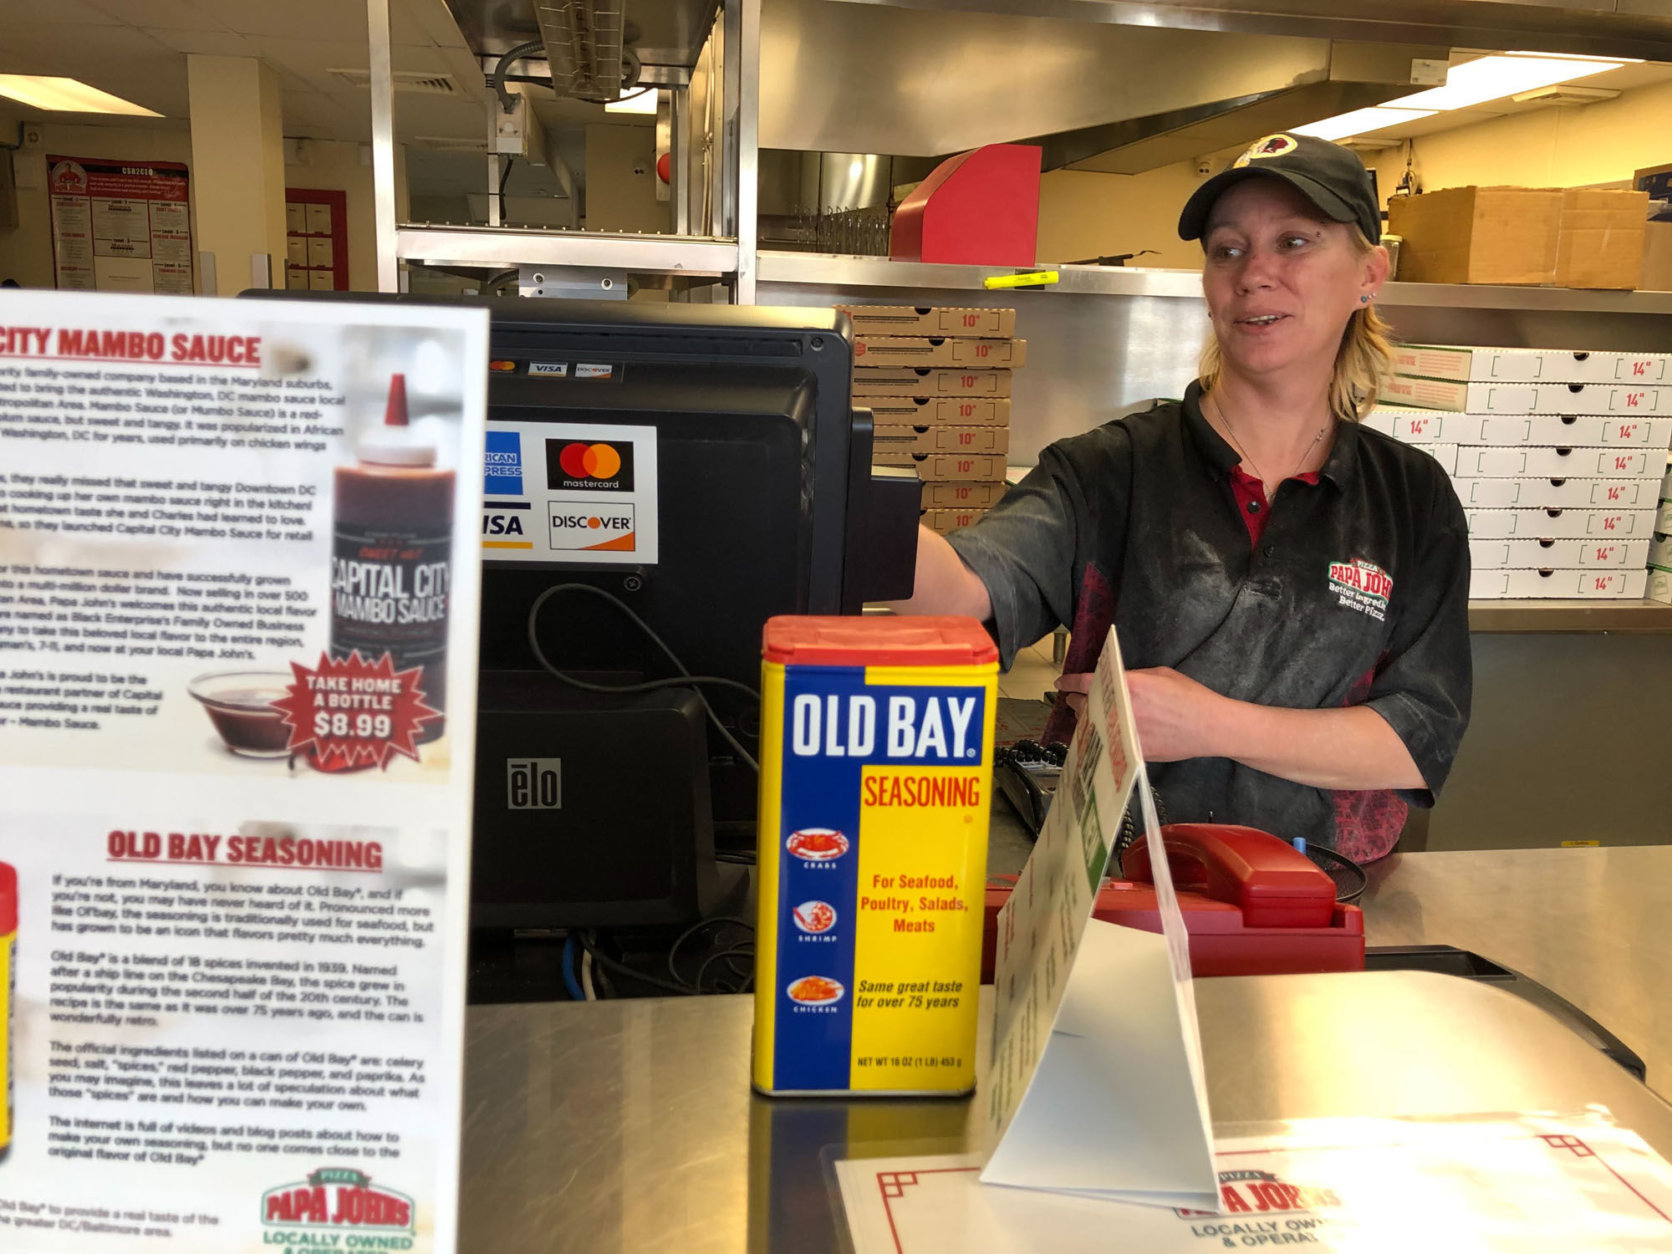 """We've been sending them pizzas to help out,"" said Holly Evans at the Papa John's. ""Anything [donated] that can help, if it's in small quantities we can get it down to them to have it dropped off."" (WTOP/Kristi King)"